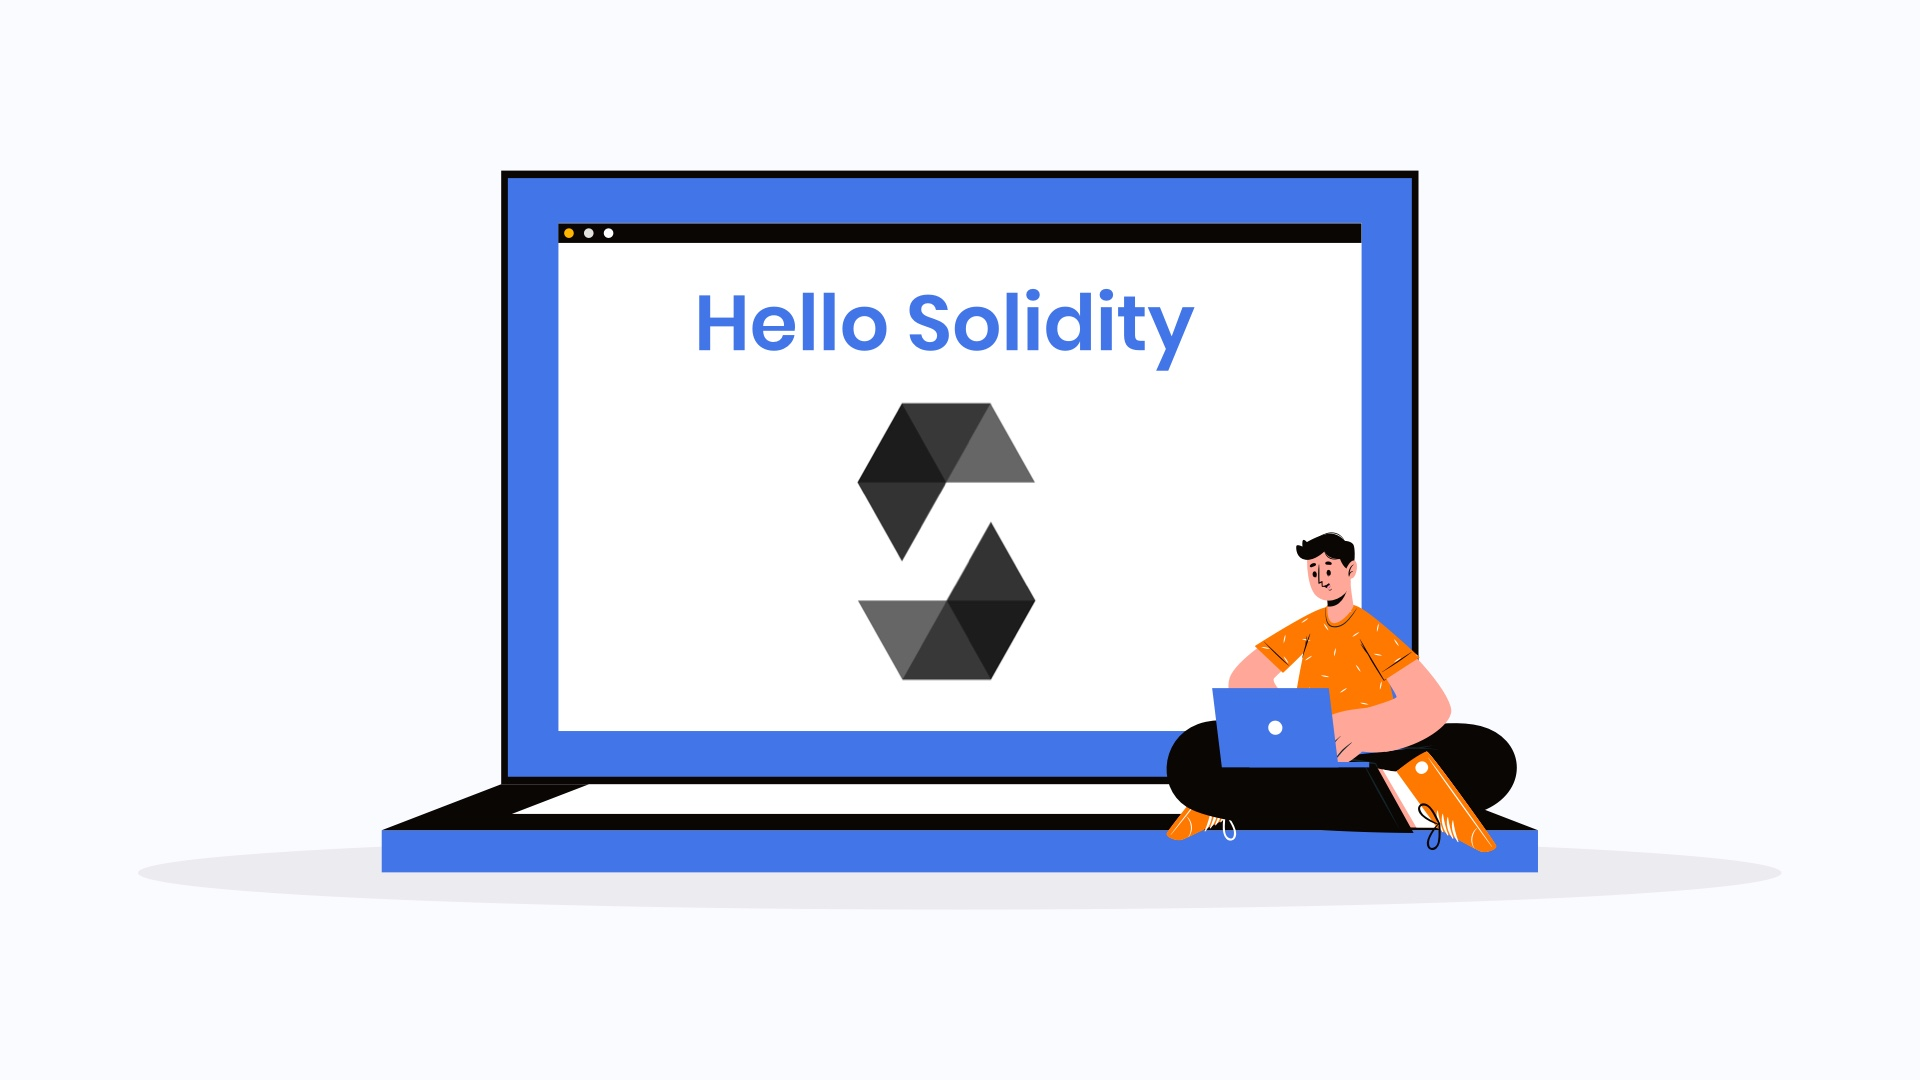 Hello Solidity